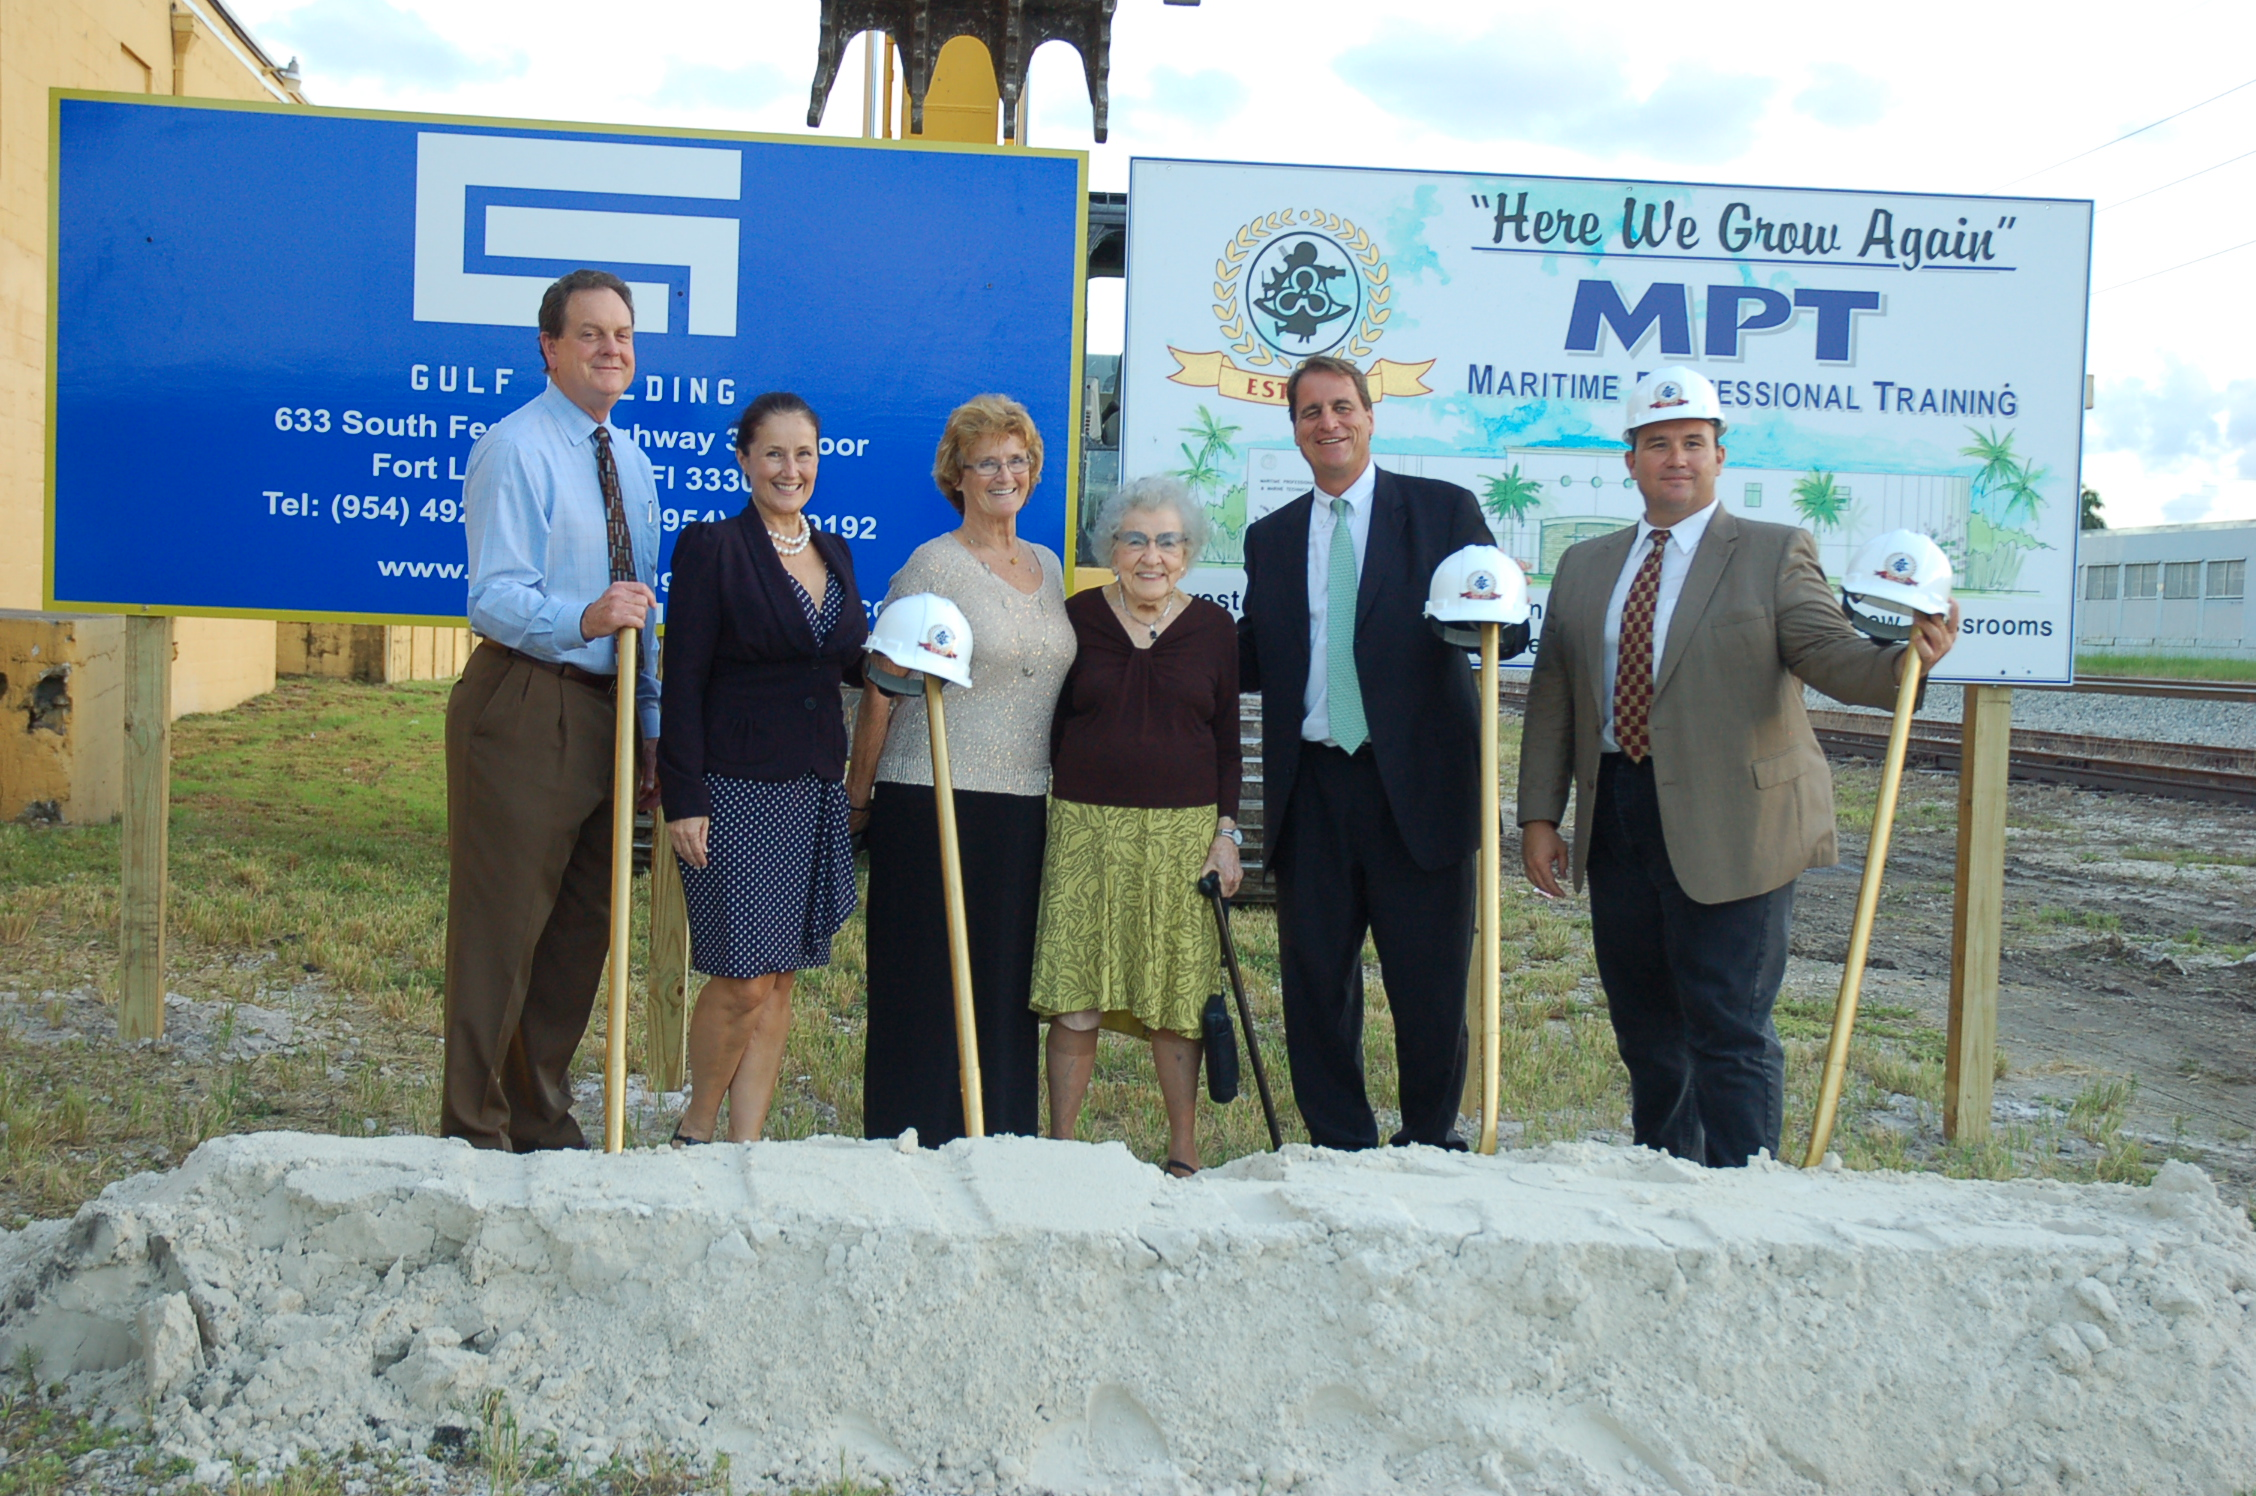 The Morley family and city dignitaries pose with Mae Simmons, center, a Ft. Lauderdale Realtor who helped MPT purchase its current location. School founder Beverly Morley, third from left, calls her the family's fairy godmother. LUCY REED